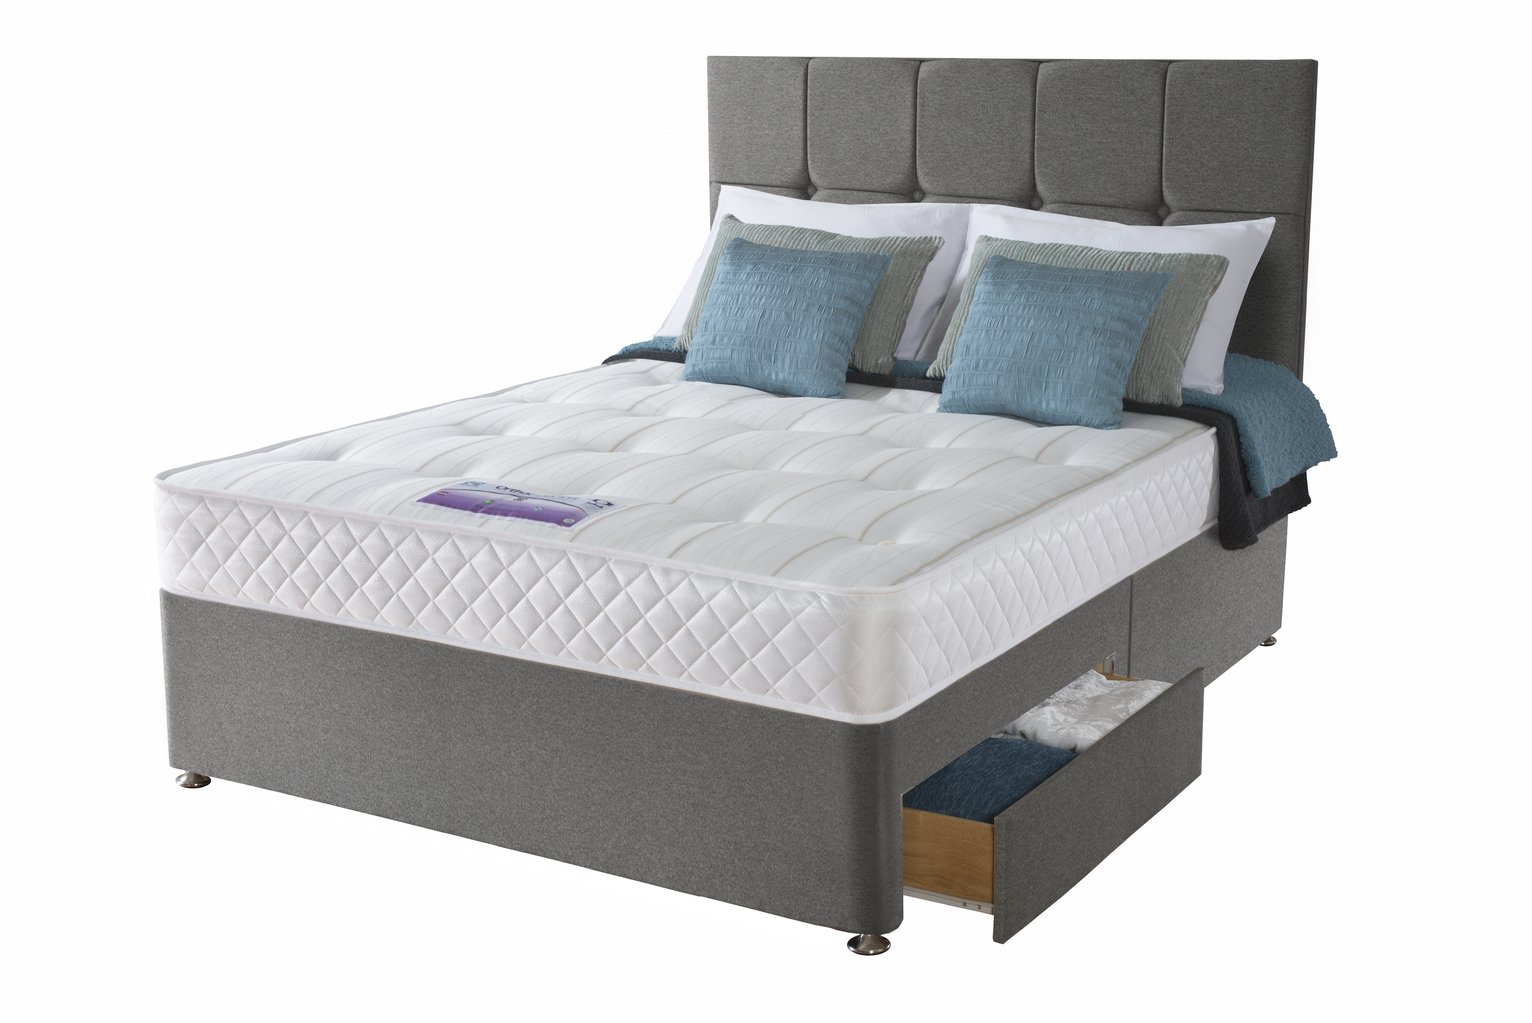 Sealy Posturepedic Divan Base Double